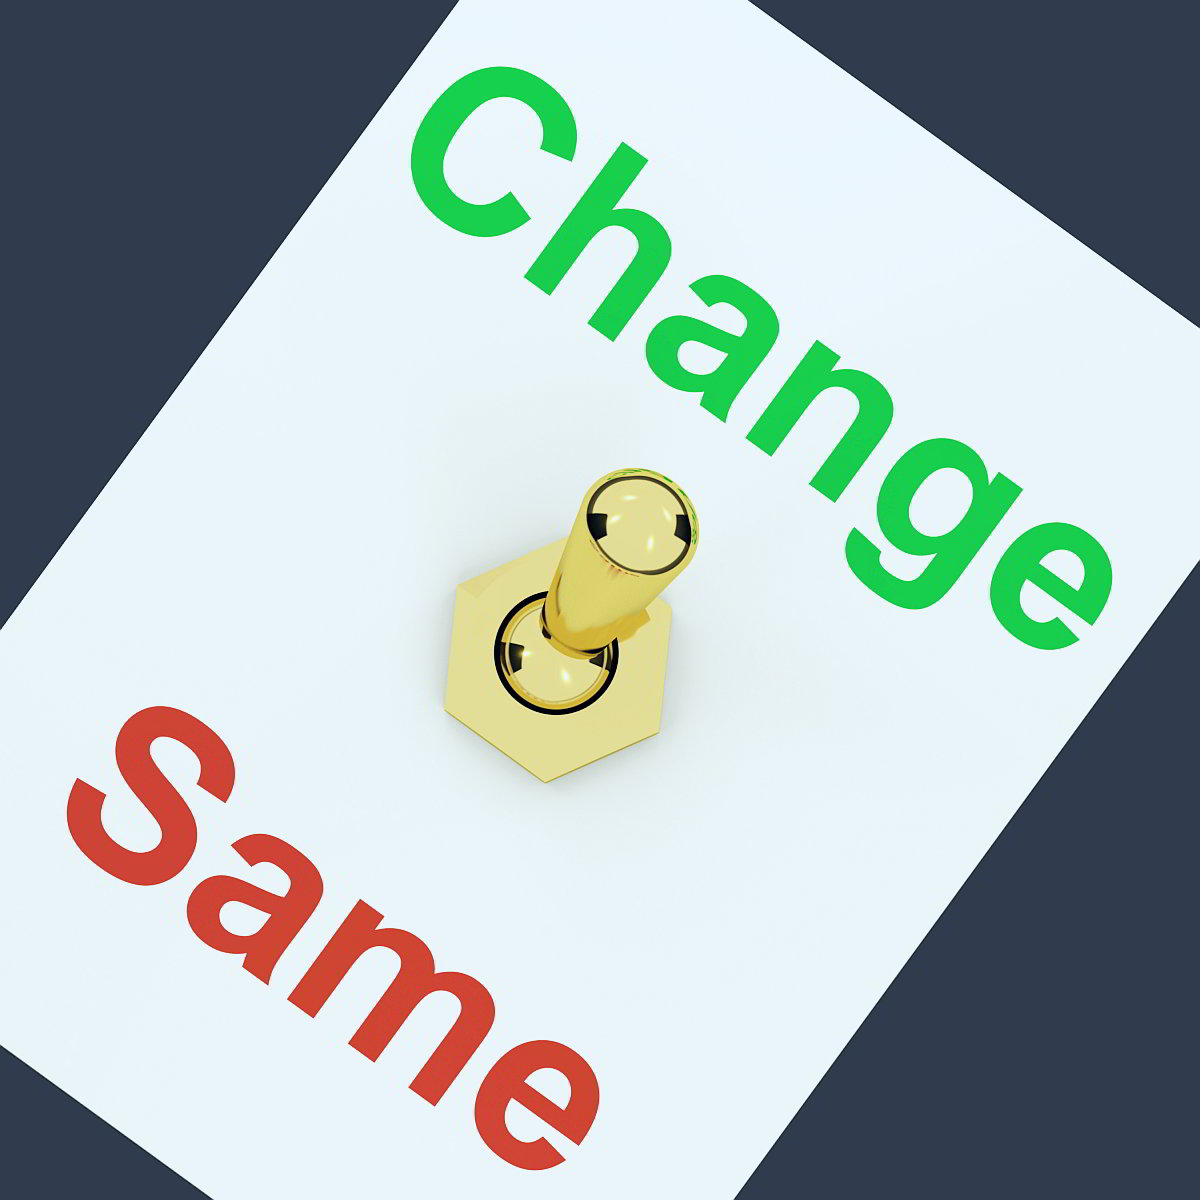 switch between change and same